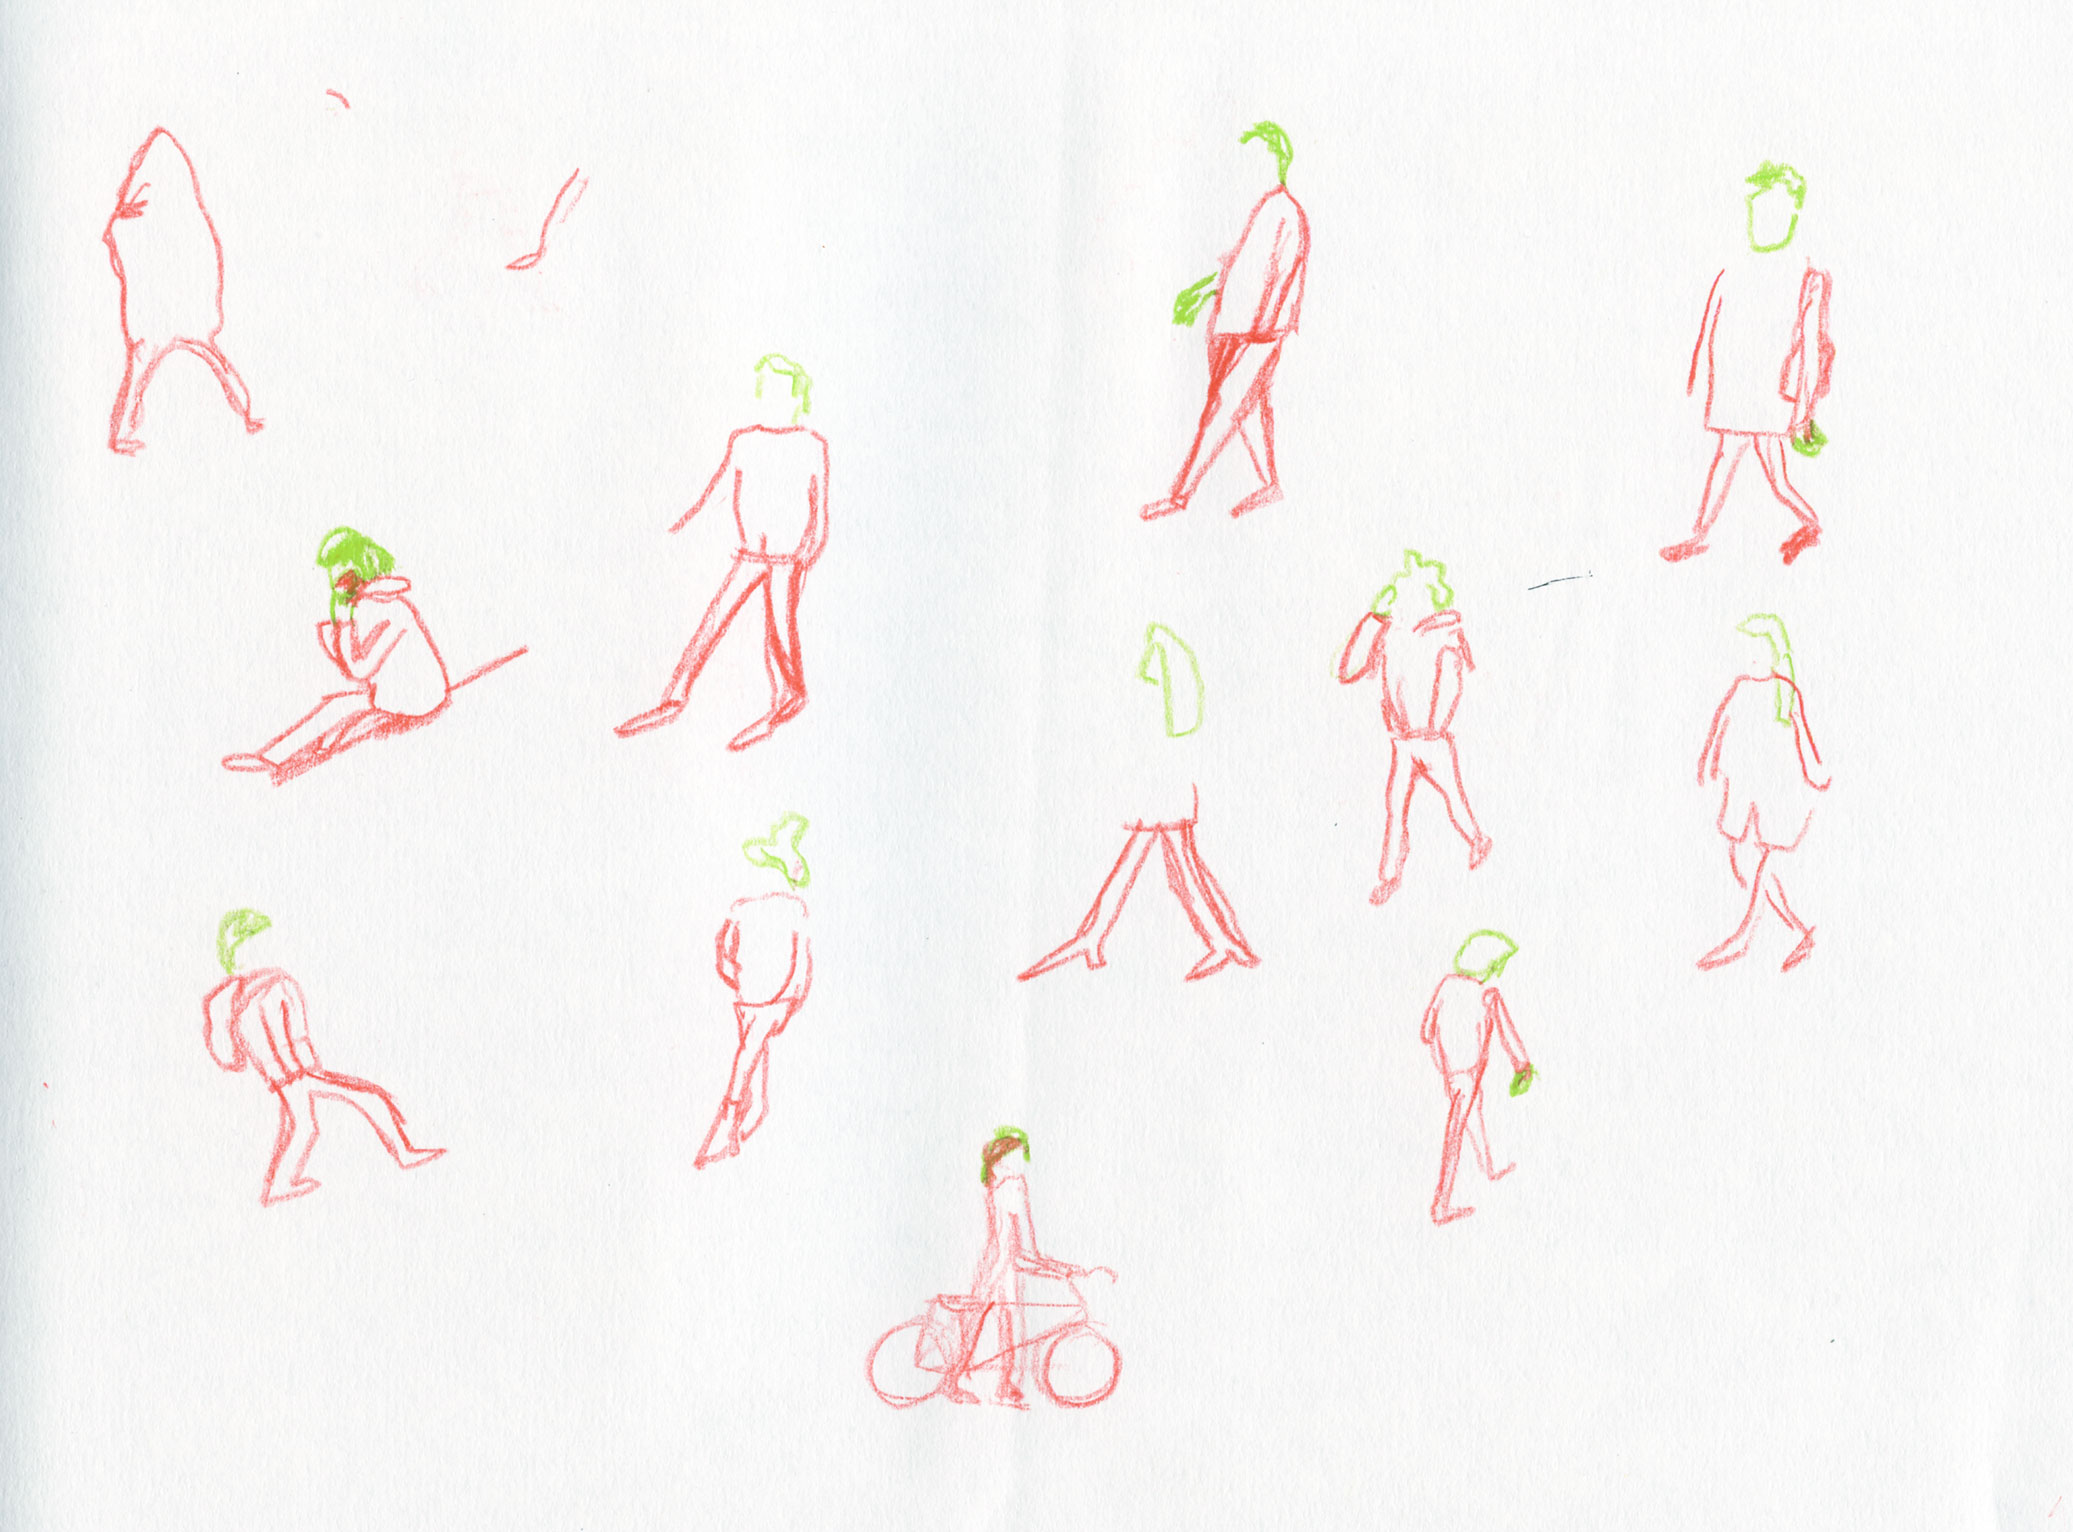 sketch people walking by ellen vesters illustrator ma childrens book illustration